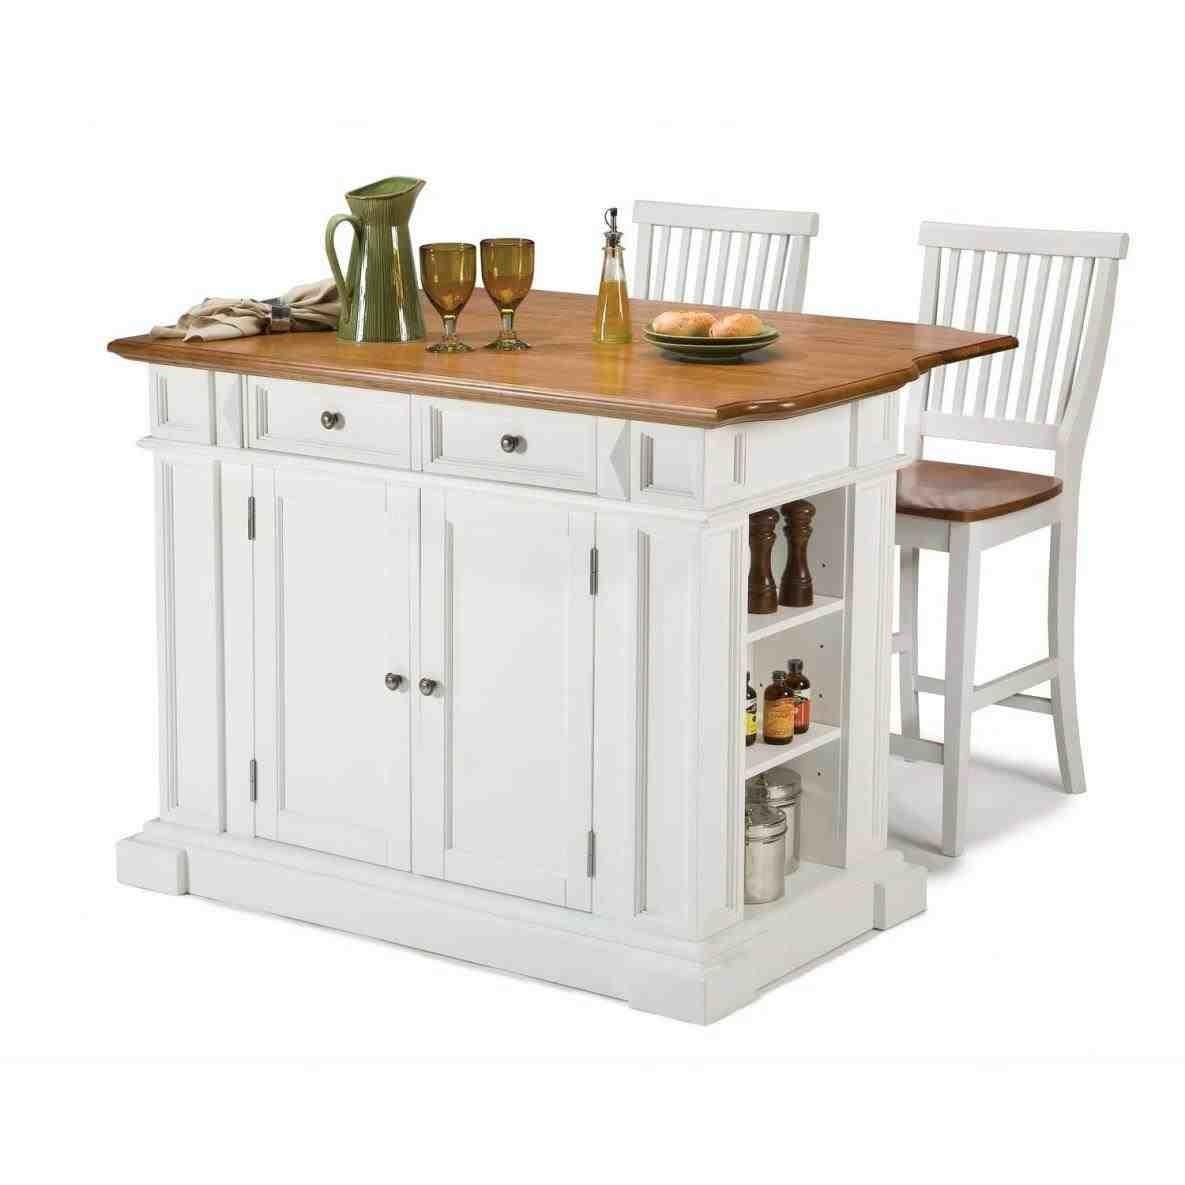 White Kitchen Island Stainless Steel Top